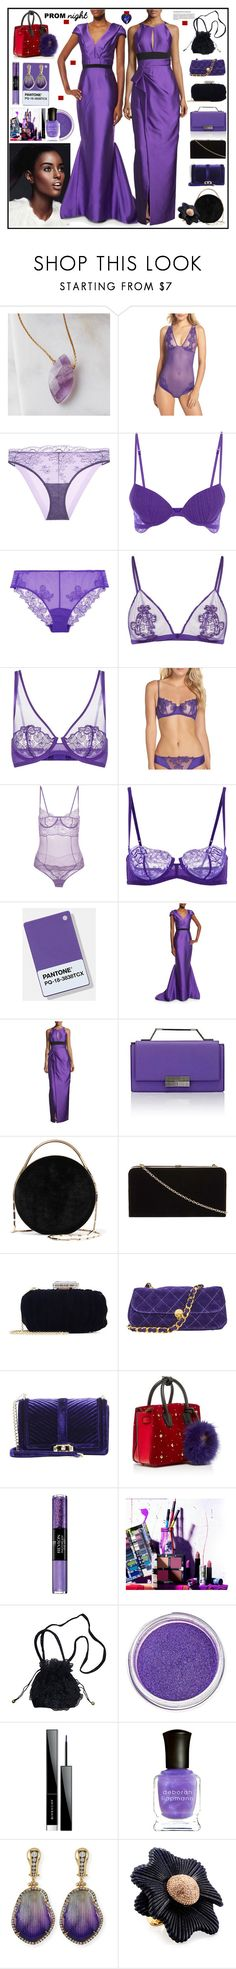 """""""Gowns for Malia and Sasha Obama"""" by yours-styling-best-friend ❤ liked on Polyvore featuring La Perla, J. Mendel, Eddie Borgo, Dorothy Perkins, Oscar de la Renta, Anna Sui, Rebecca Minkoff, MCM, Revlon and Urban Decay"""